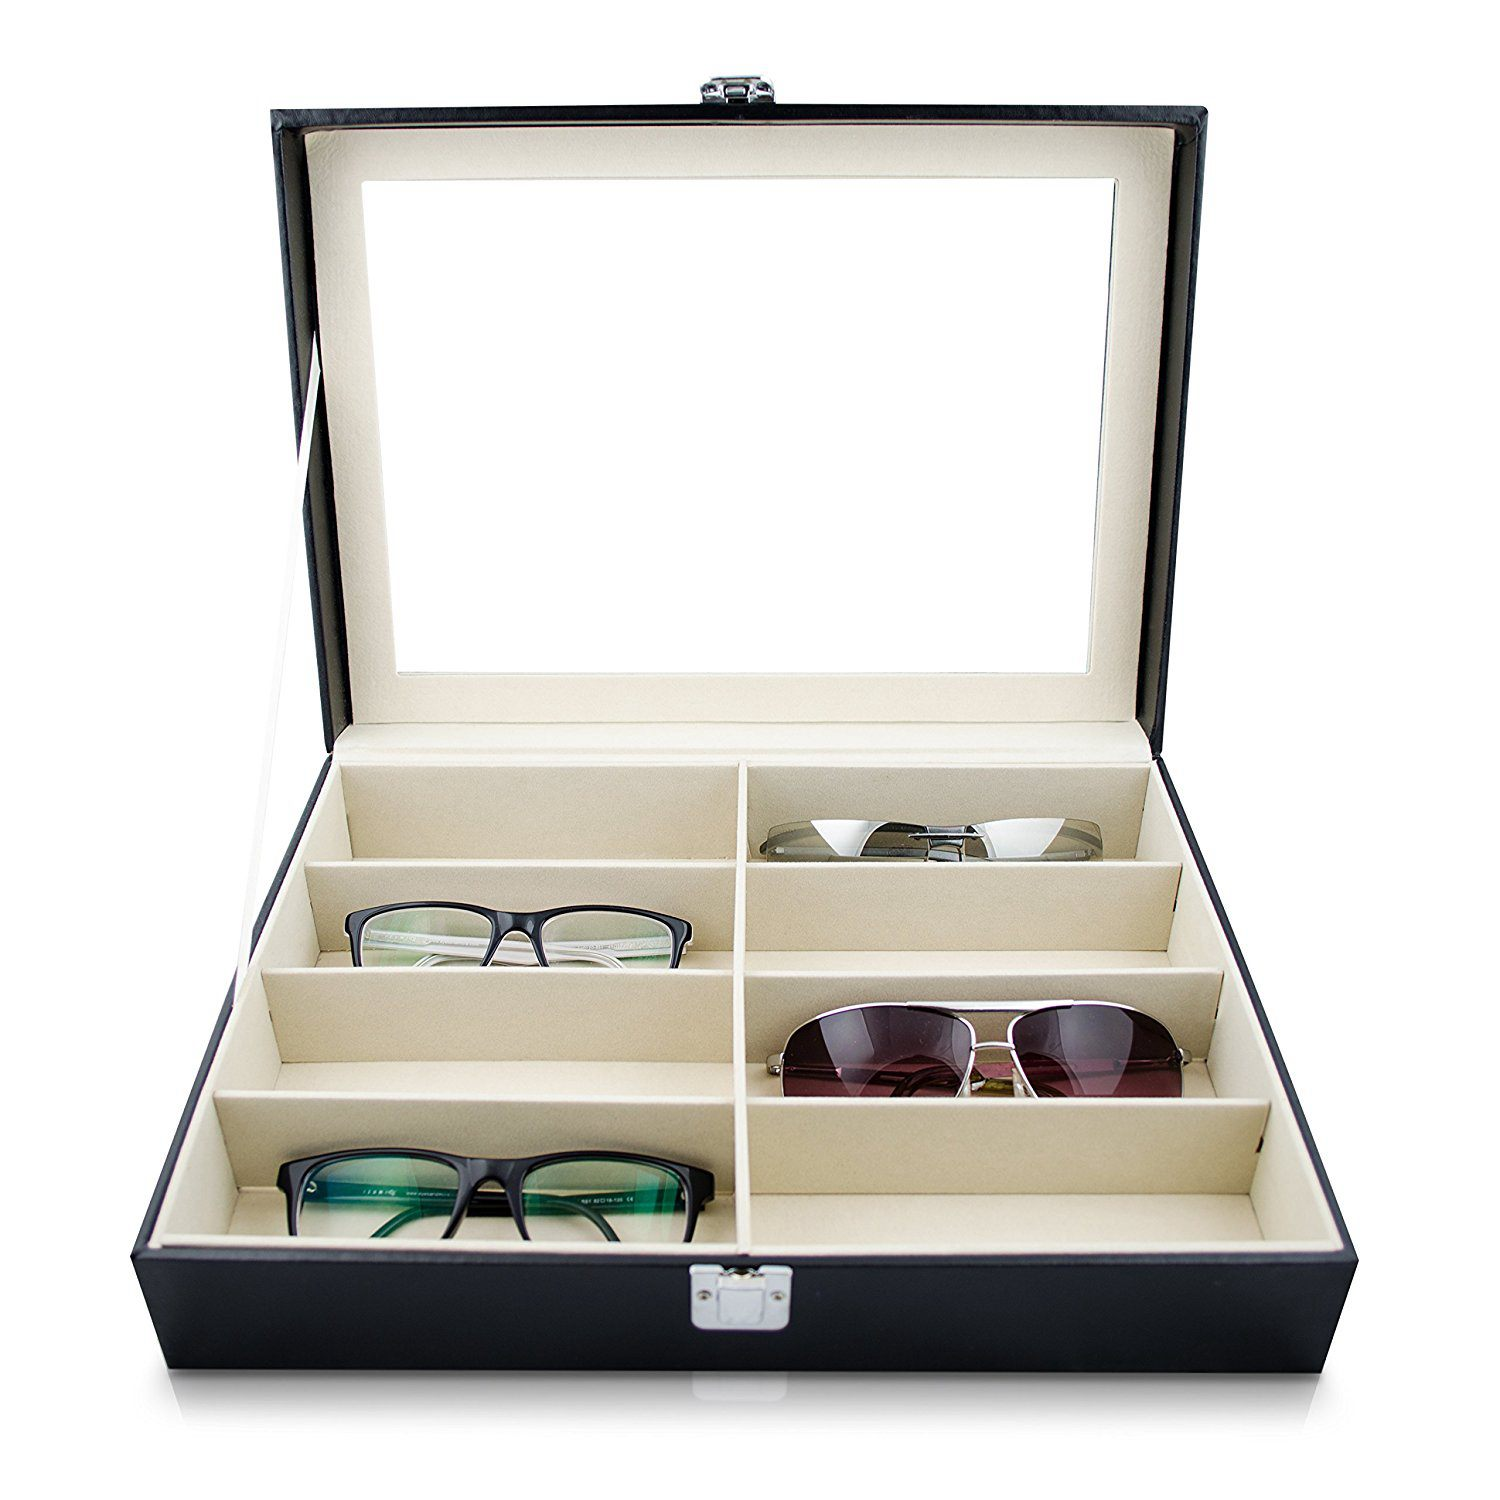 Eyeglass Sunglass Storage Box Imitation Leather Glasses Display Case Storage Organizer Collector 8 Slot organizer storage box